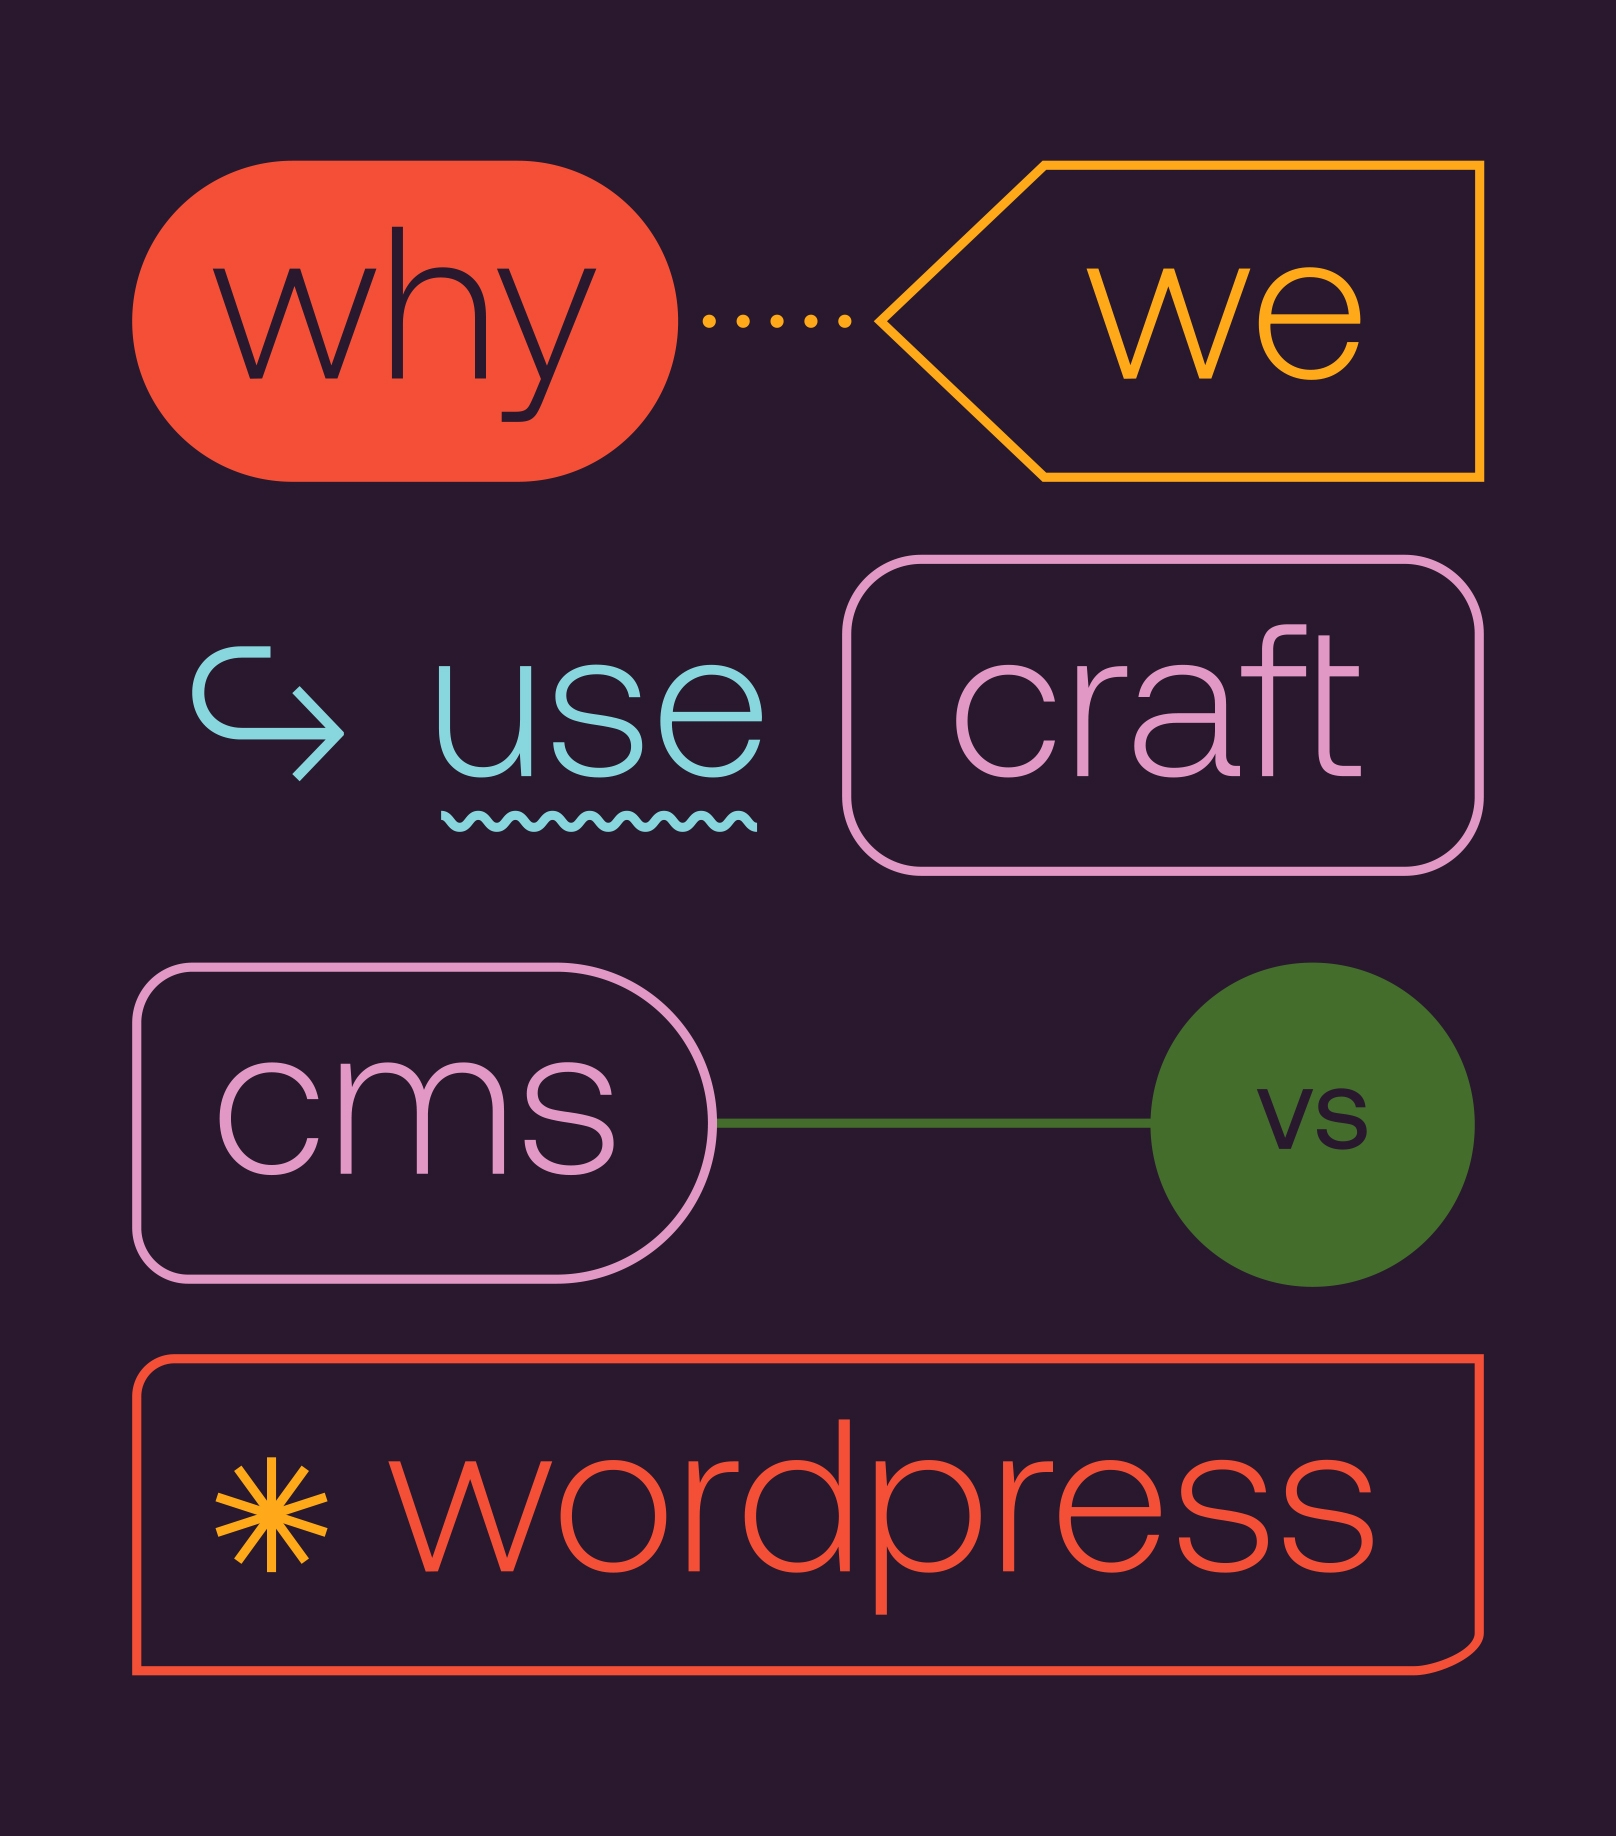 Craft cms wordpress2